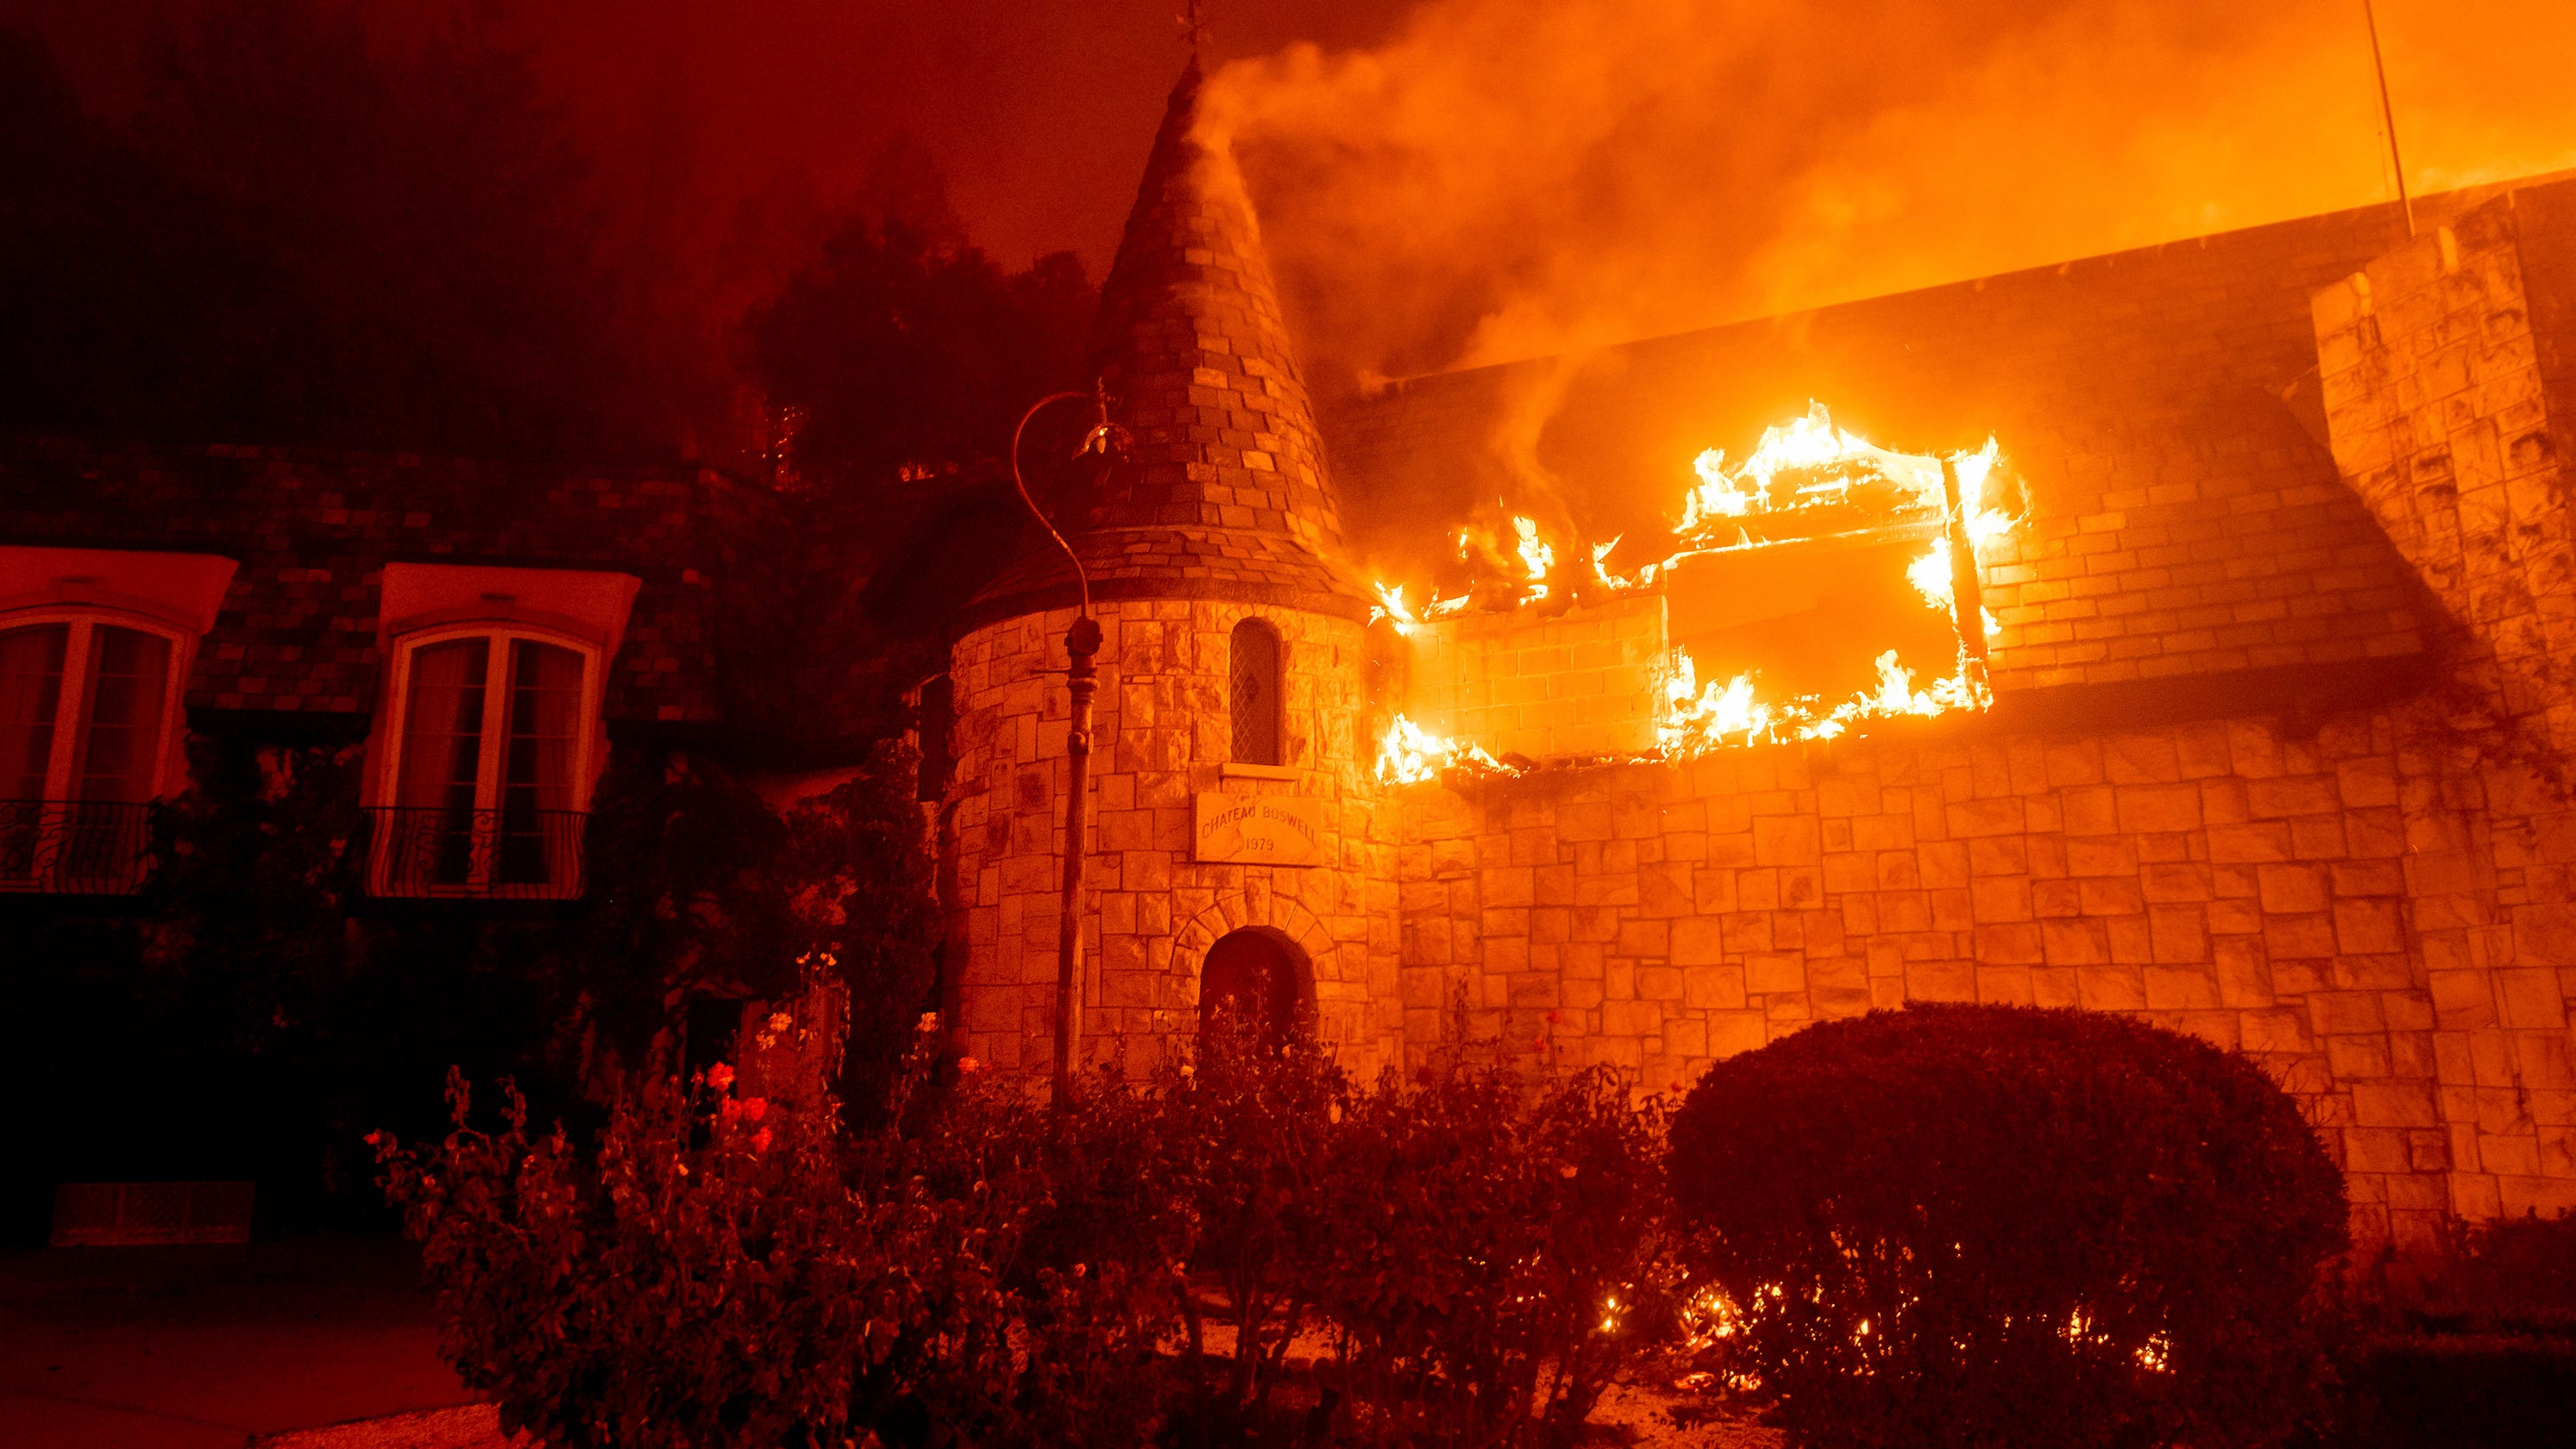 'Simply heartbroken': Photos show Glass Fire's devastating impact on Chateau Boswell winery in California's Napa Valley – USA TODAY